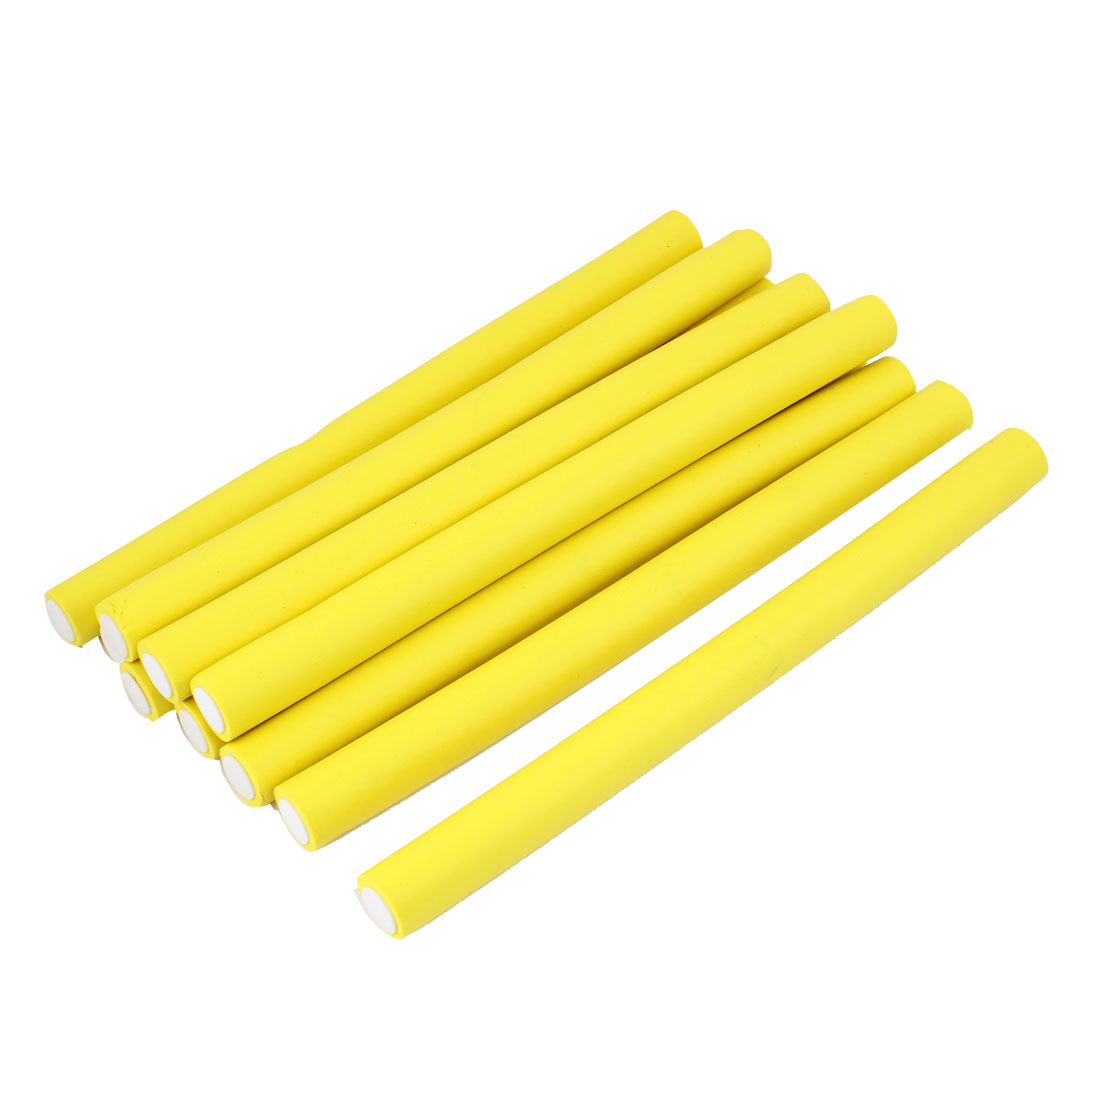 10Pcs Soft Foam Curler Tool DIY Styling Hair Rollers Yellow